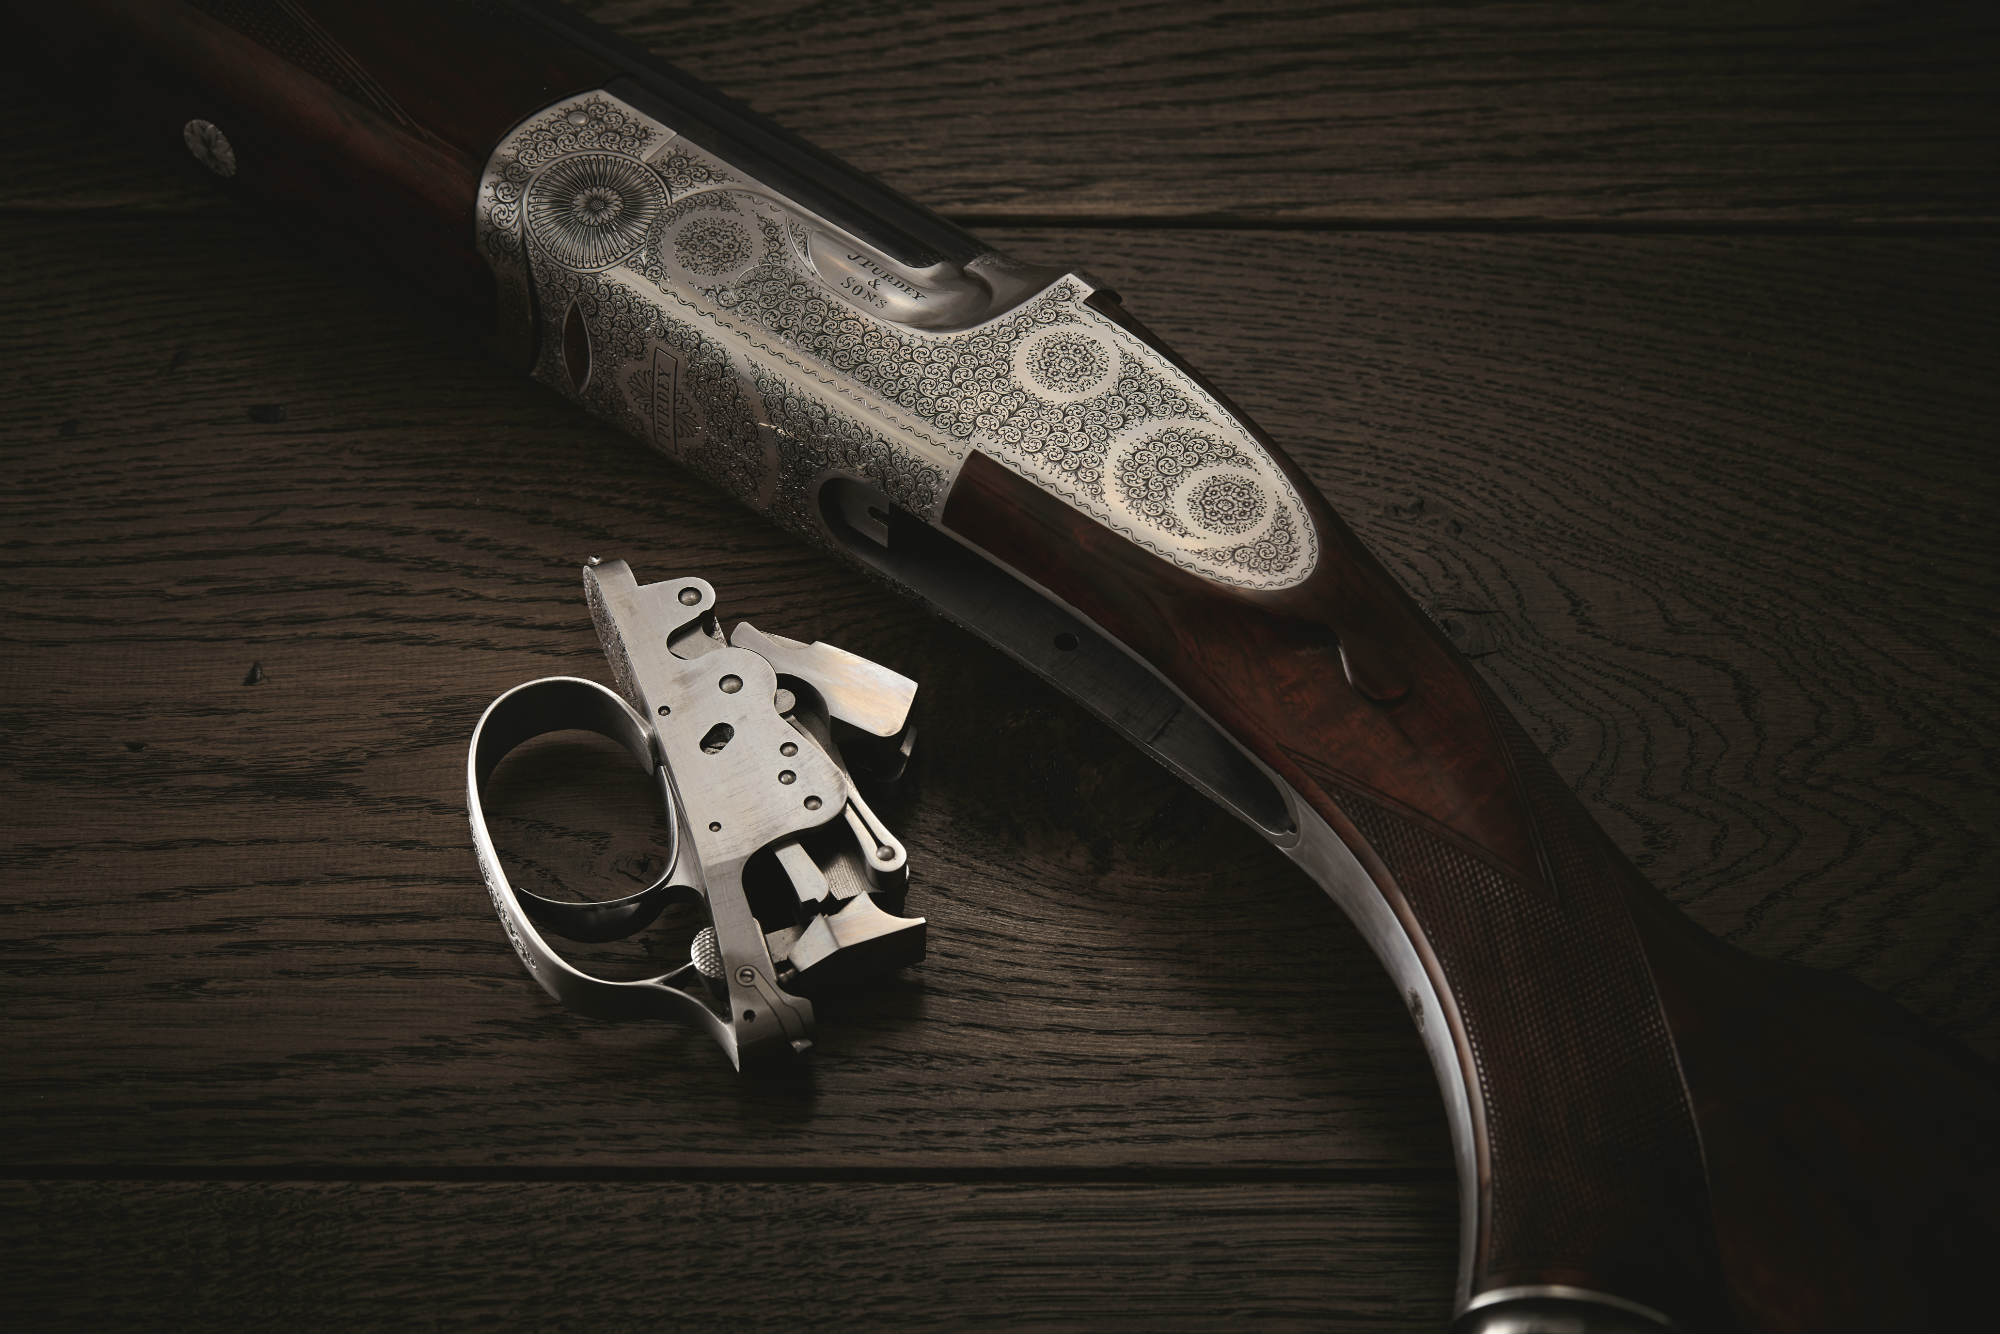 The trigger of the Purdey Trigger Plate shotgun